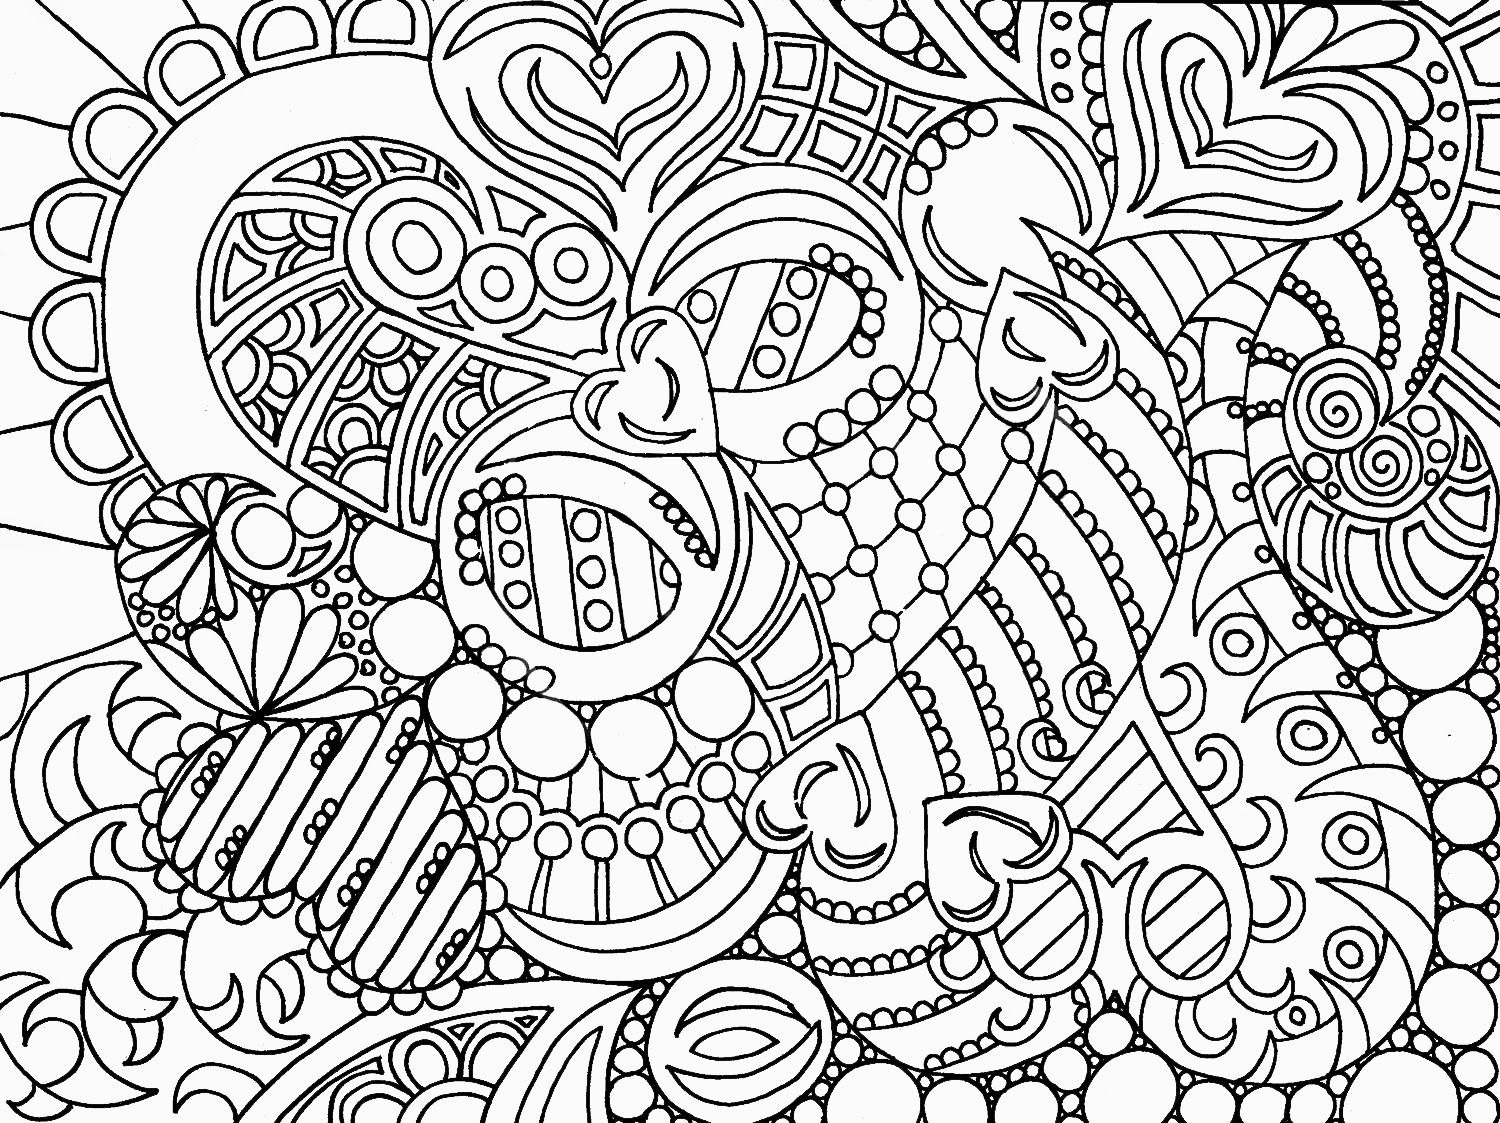 abstract coloring pages you can get abstract art coloring pages for adult here - Cool Printable Coloring Pages